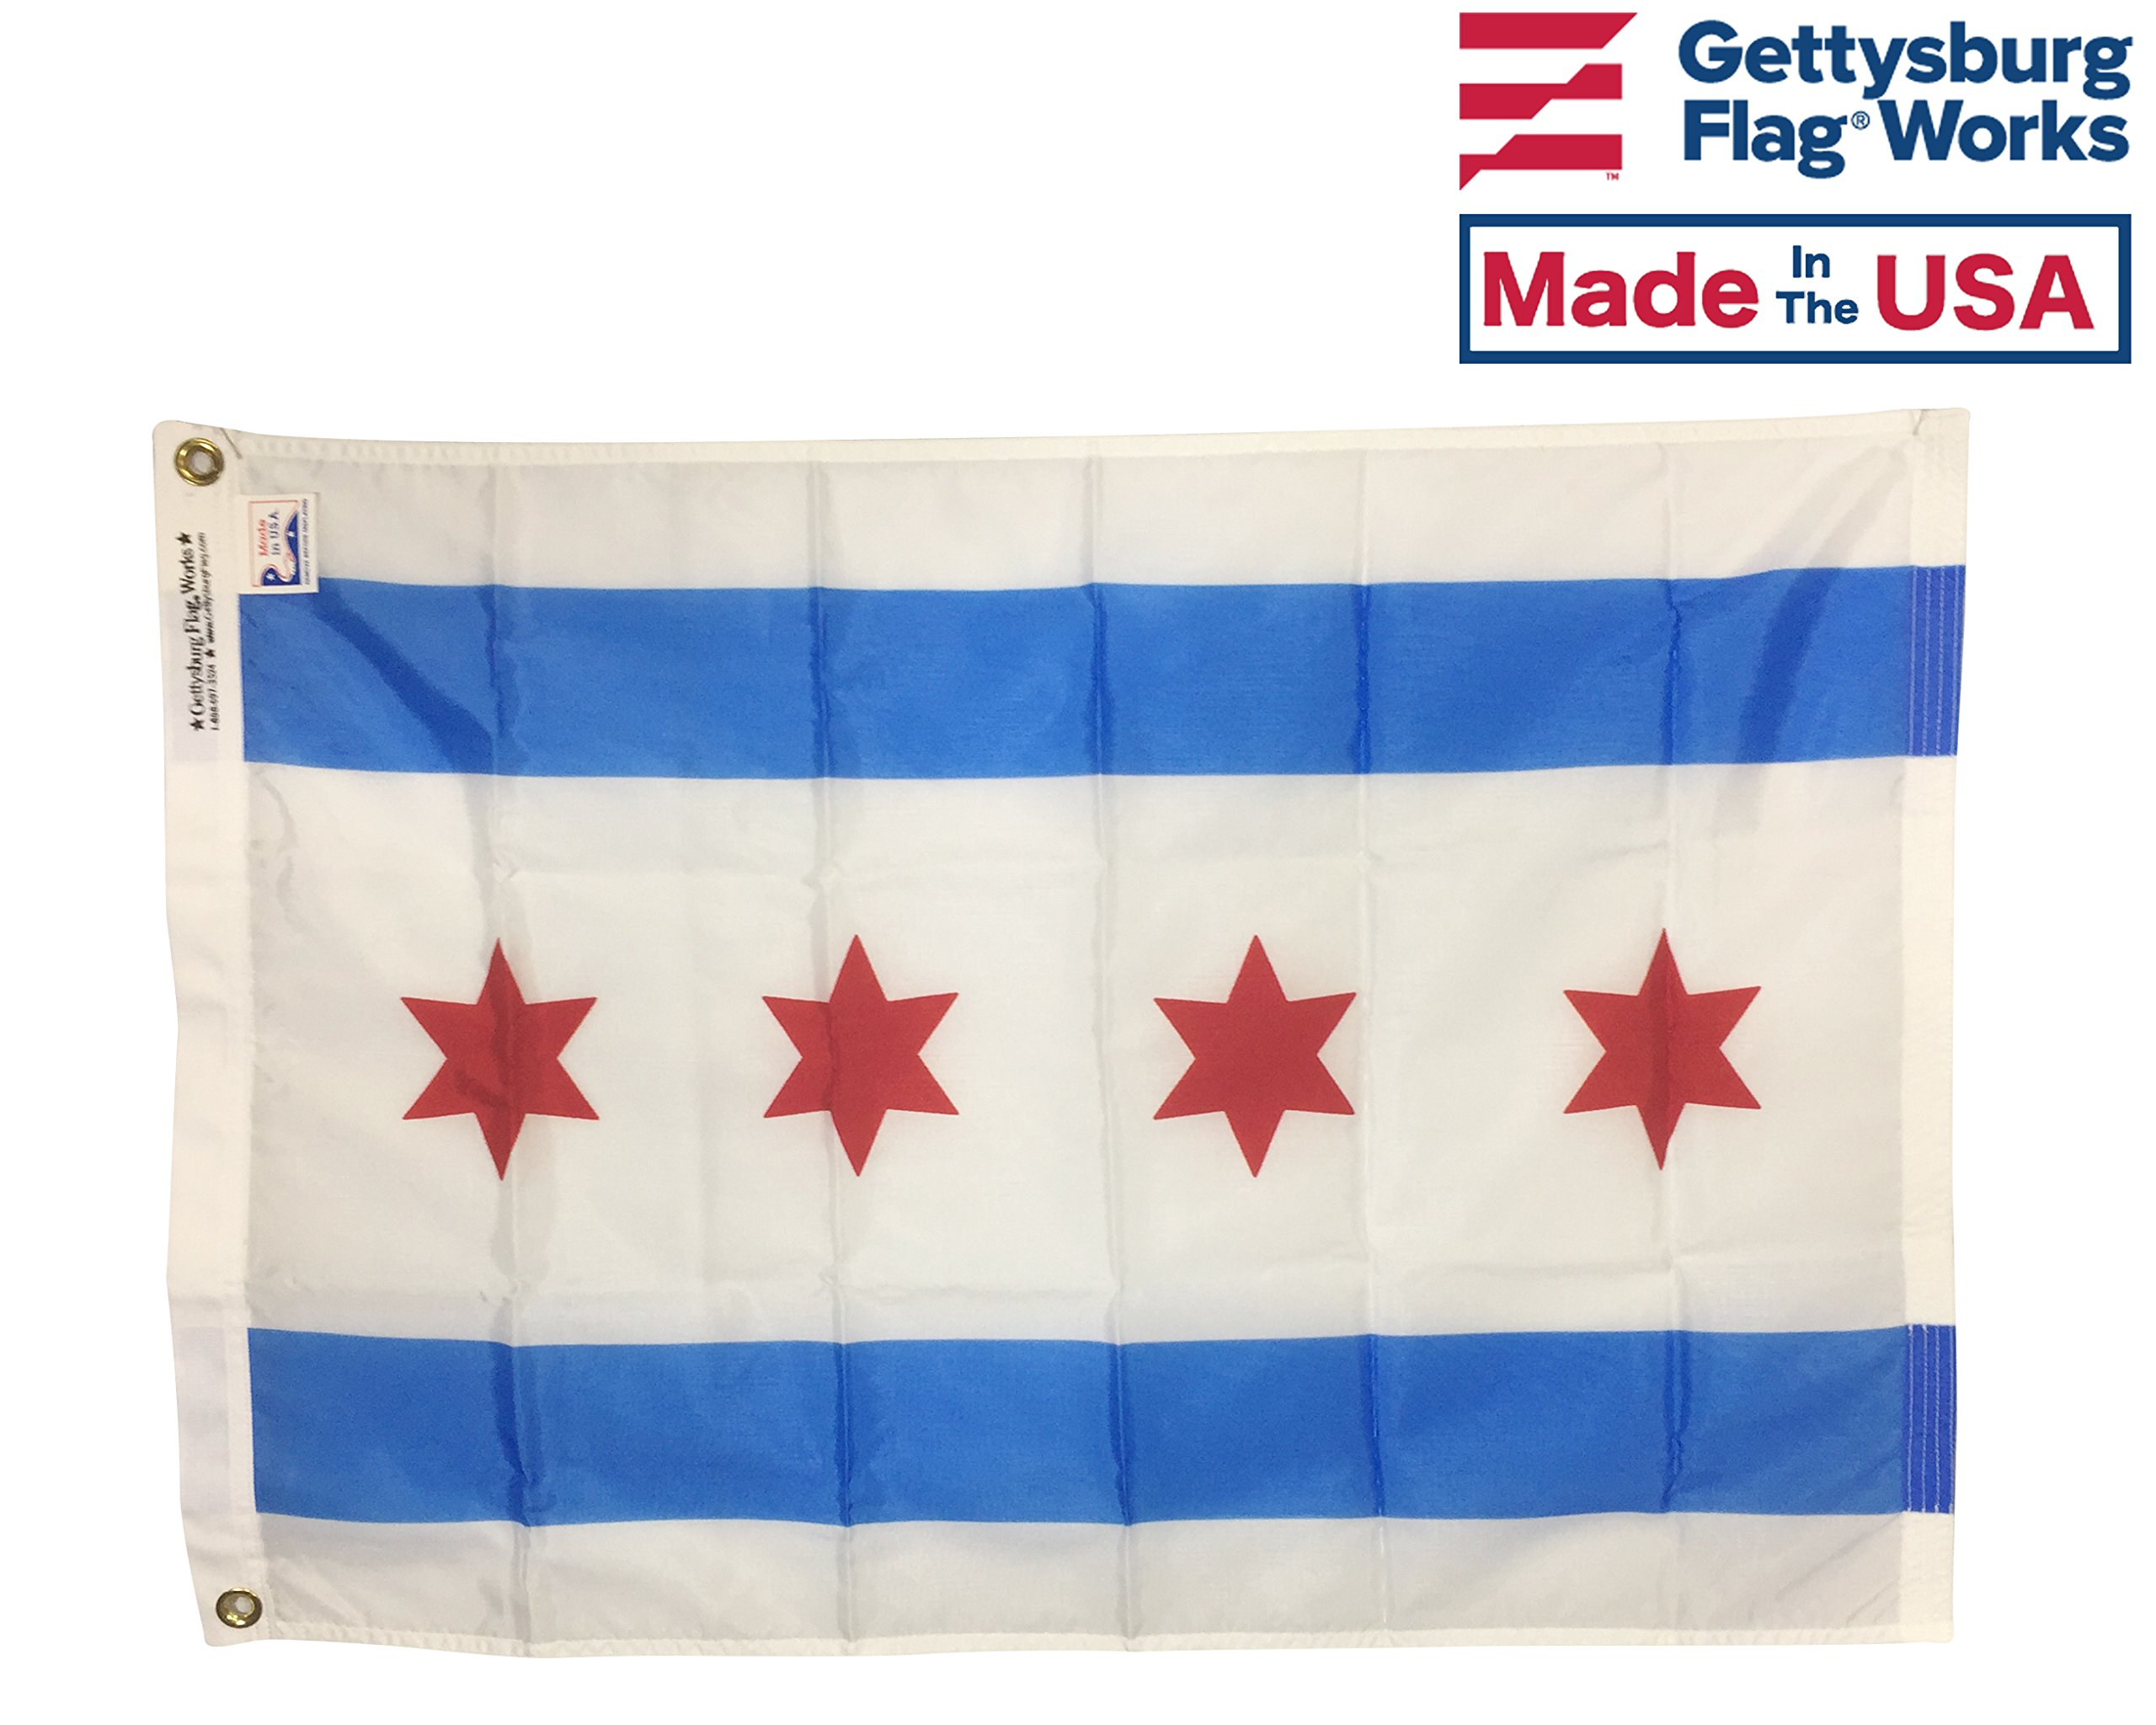 5x8' Chicago City All Weather Nylon Outdoor Flag - Made in USA